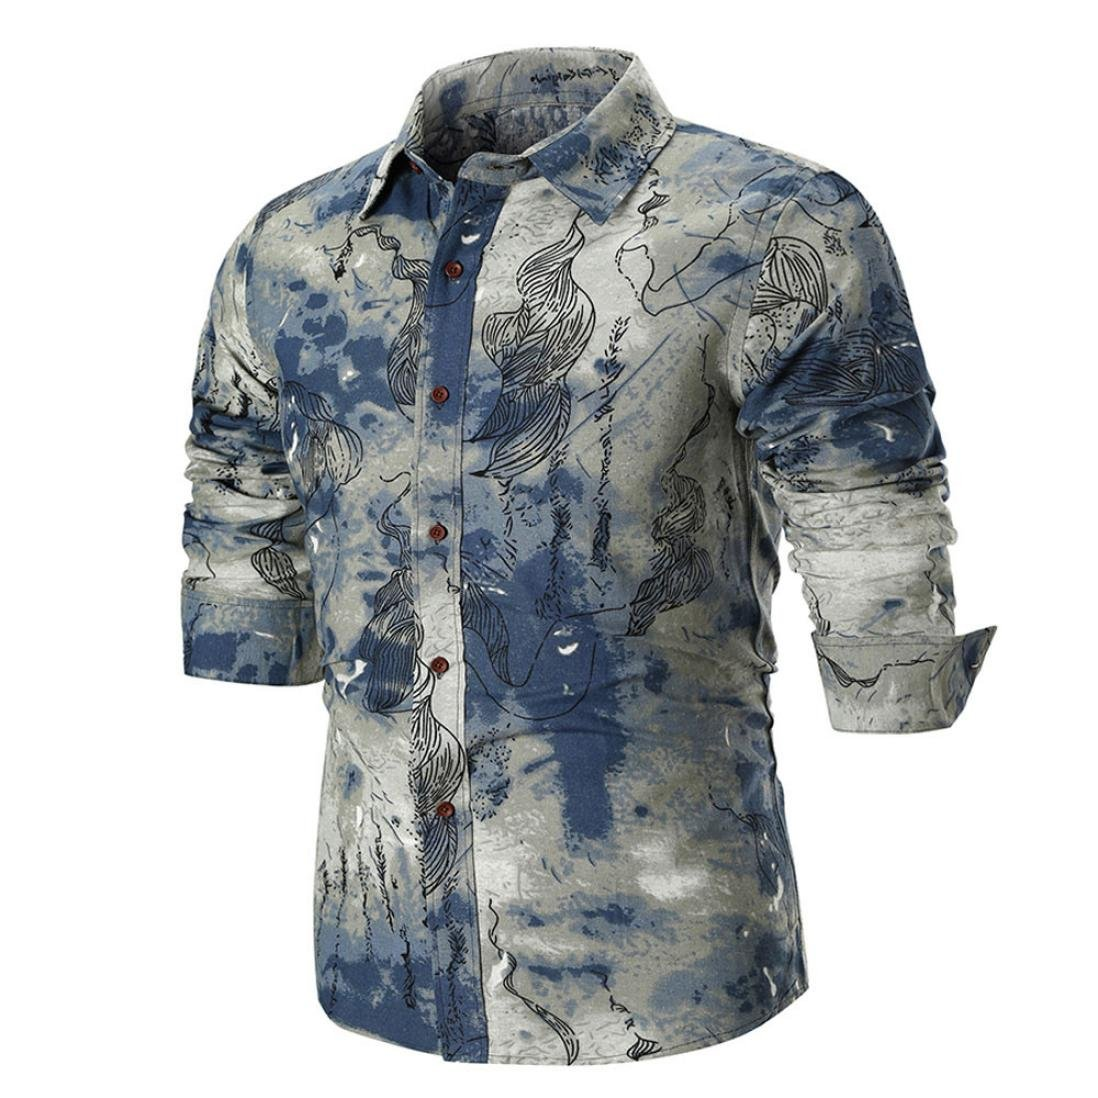 Newest Mens Printed Shirt Long Sleeve Slim Fit Button Down Dress